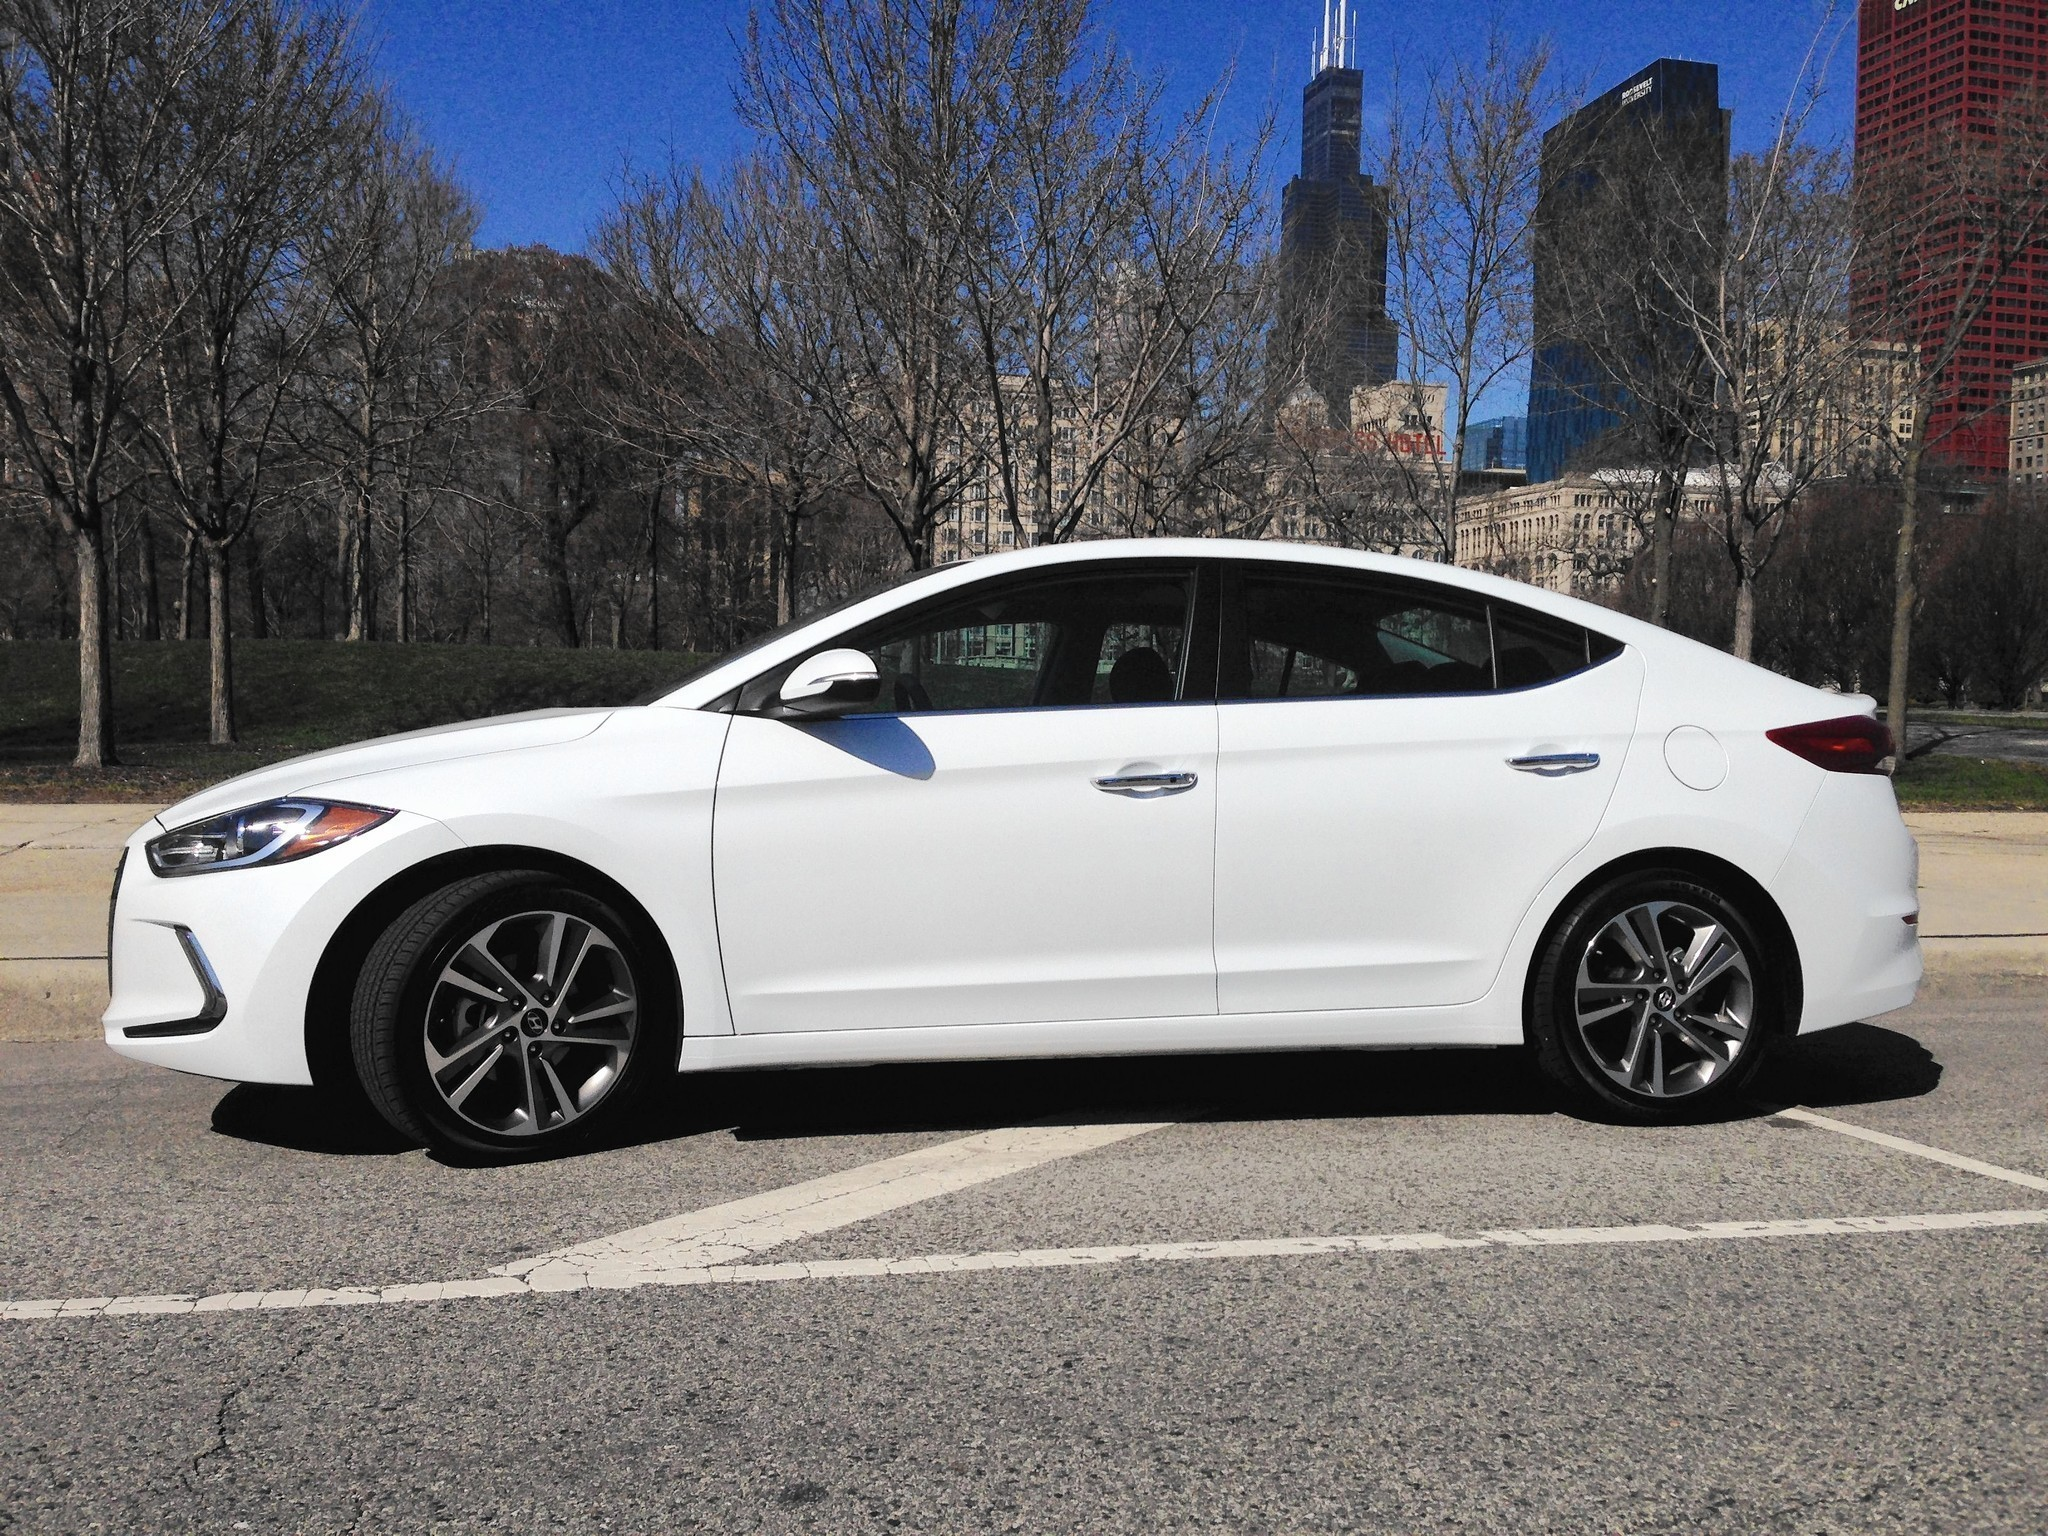 2017 Hyundai Elantra Packs More Tech Than The Compact